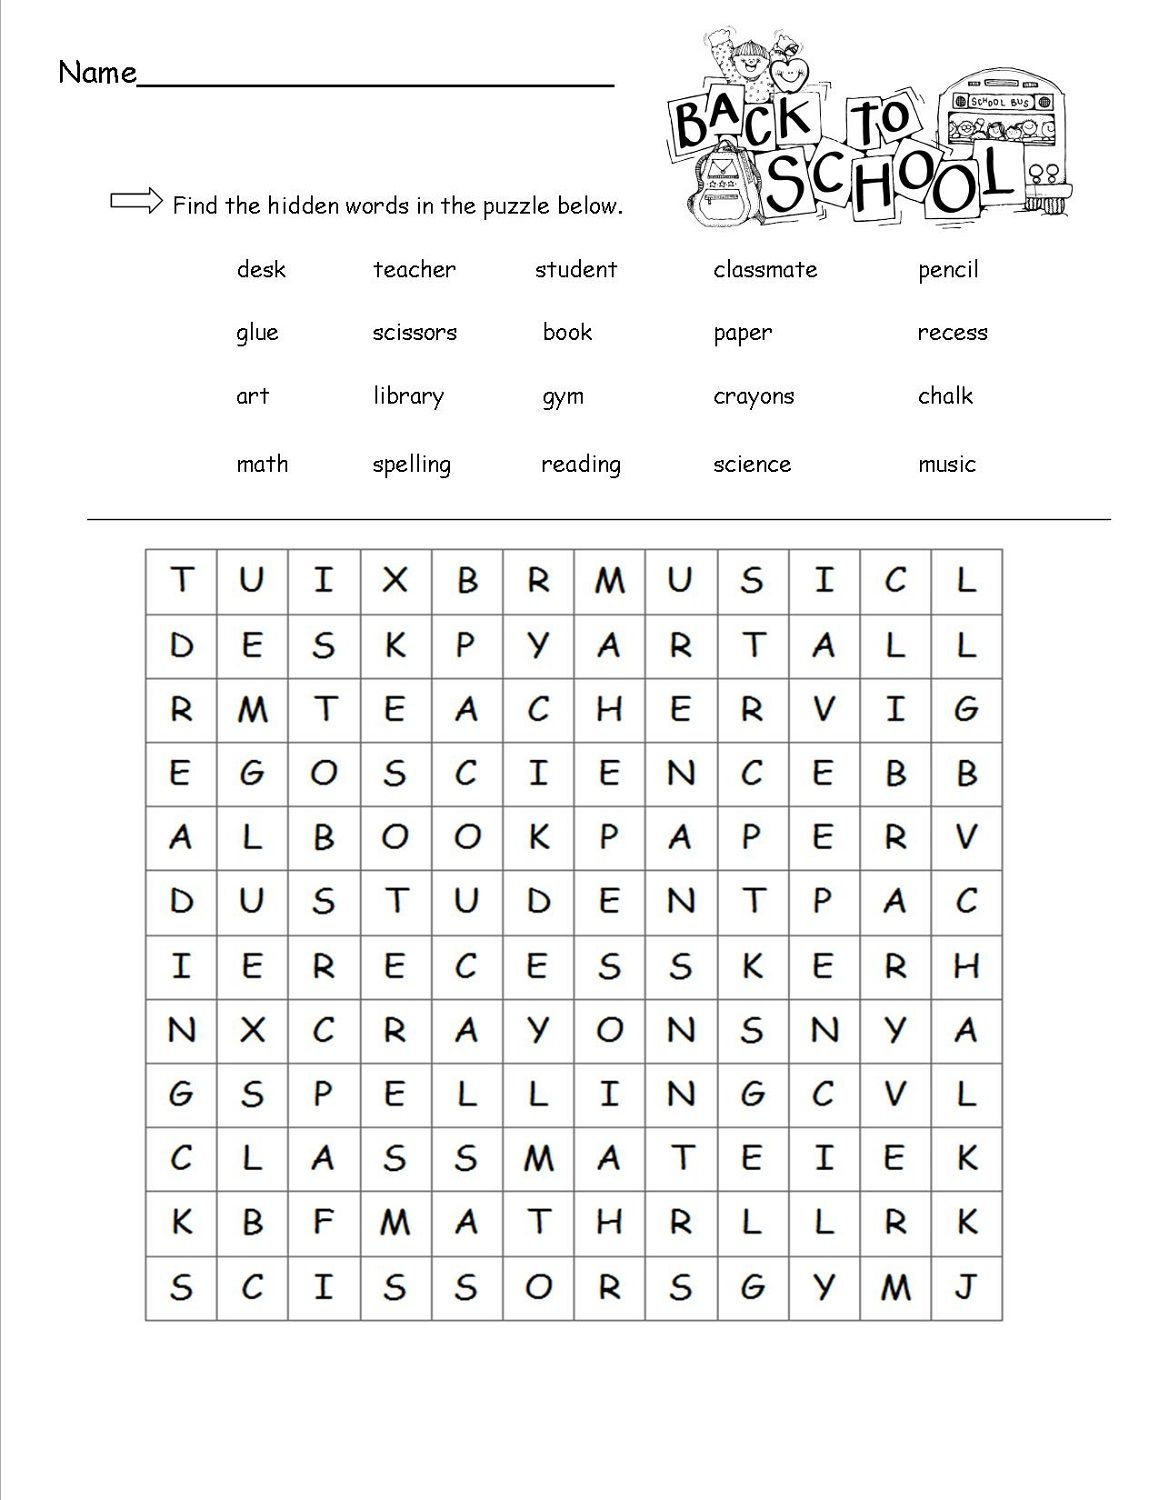 Free Word Search For Kids Pdf (With Images) | Back To School Intended For Word Of The Day Printouts